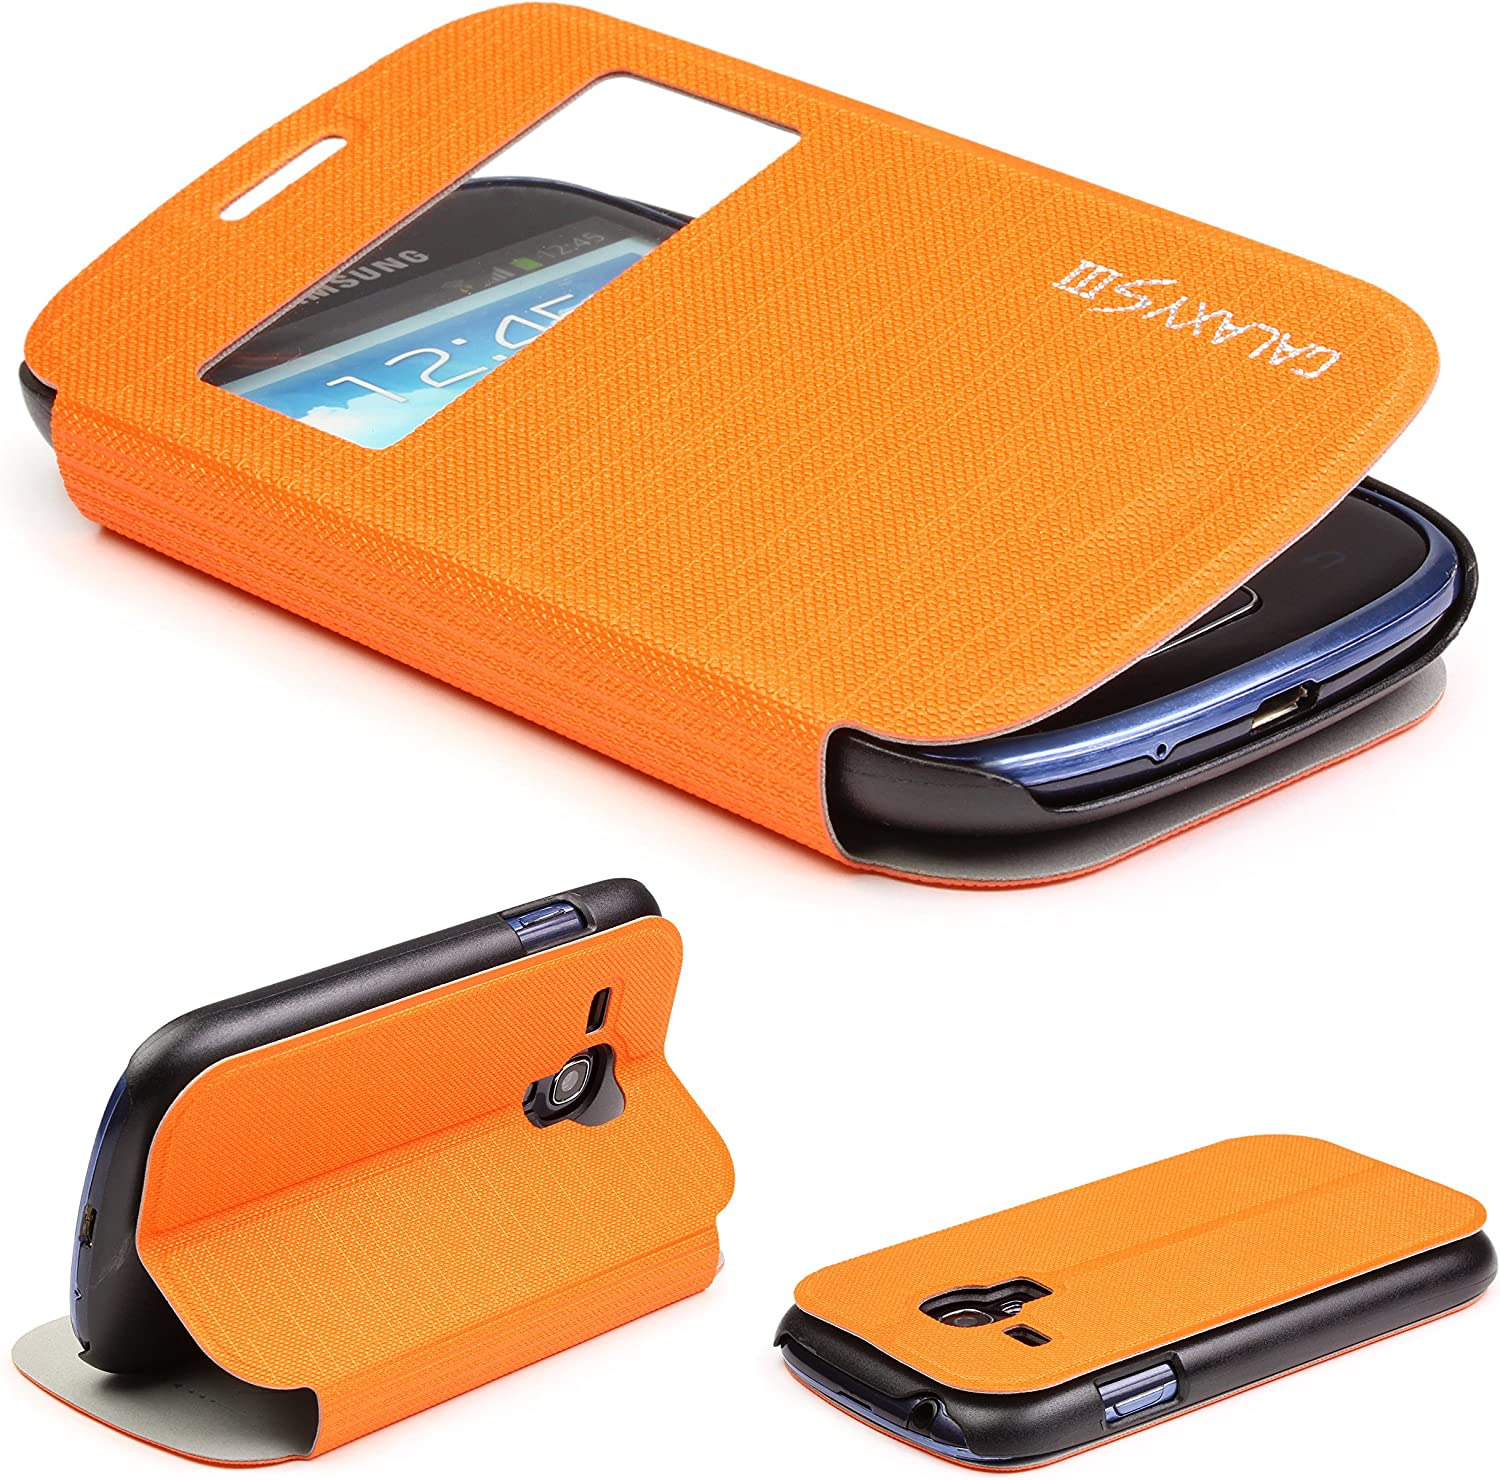 Galaxy S3 Mini Case Urcover Flip Cover With S View Window Stand Function Exact Fit Protective Wallet Case For Samsung Galaxy S3 Mini 4 Inch Orange